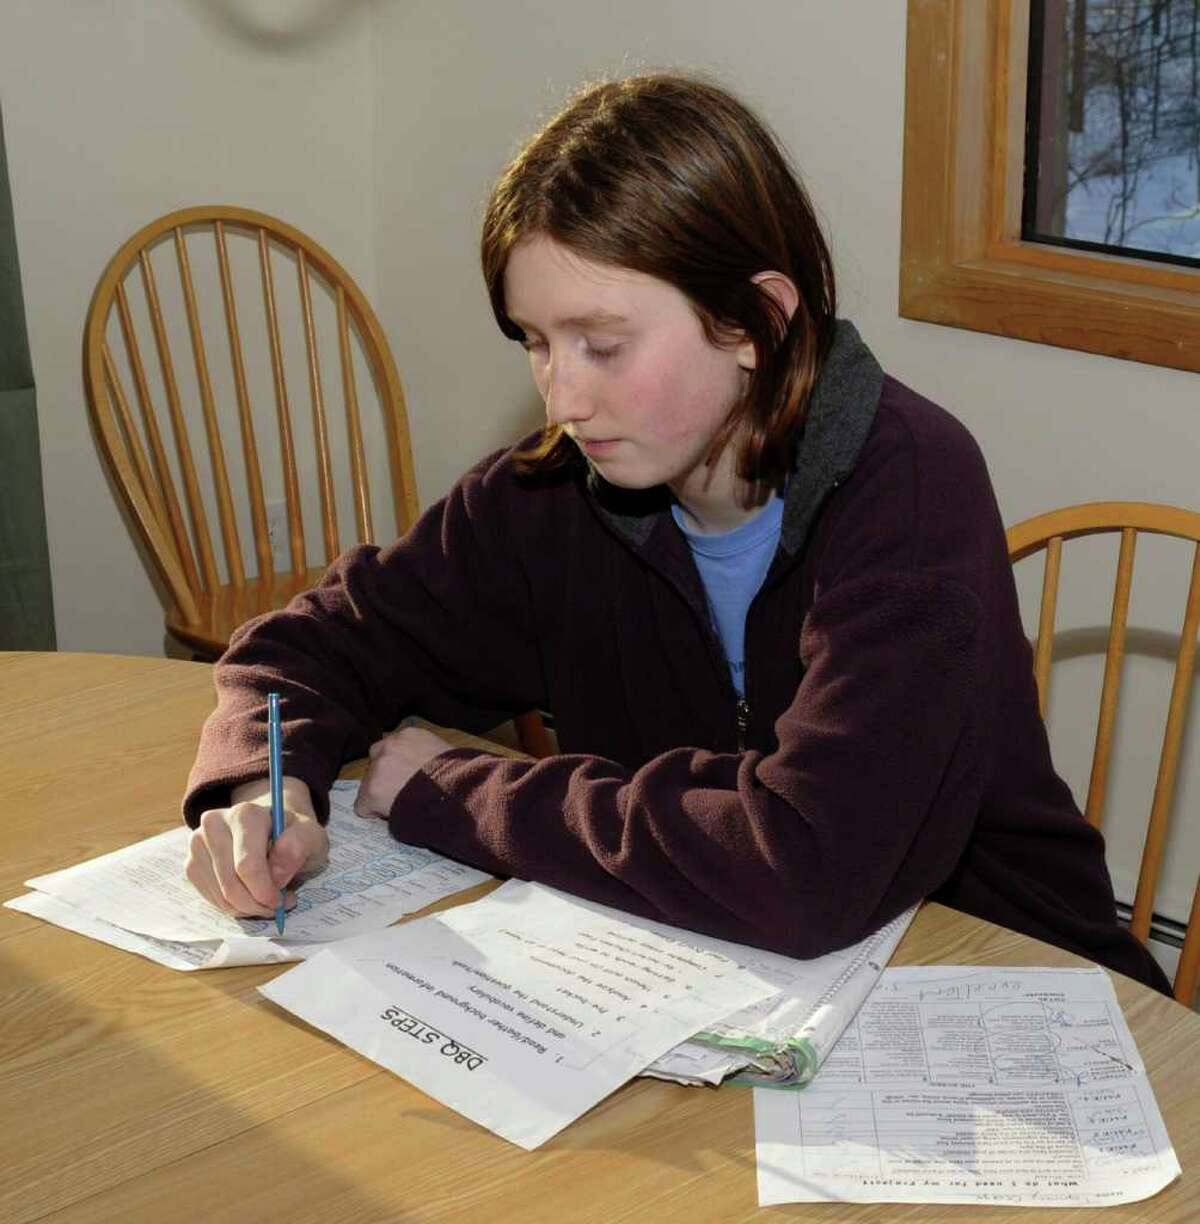 Thirteen year old, Tommy George, an 8th grader at Broadview Middle School, in Danbury, uses an assignment notebook and a detailed checking system, for school projects and exams, to help maintaine his straight A grades, on Thursday, Feb 10, 2011.